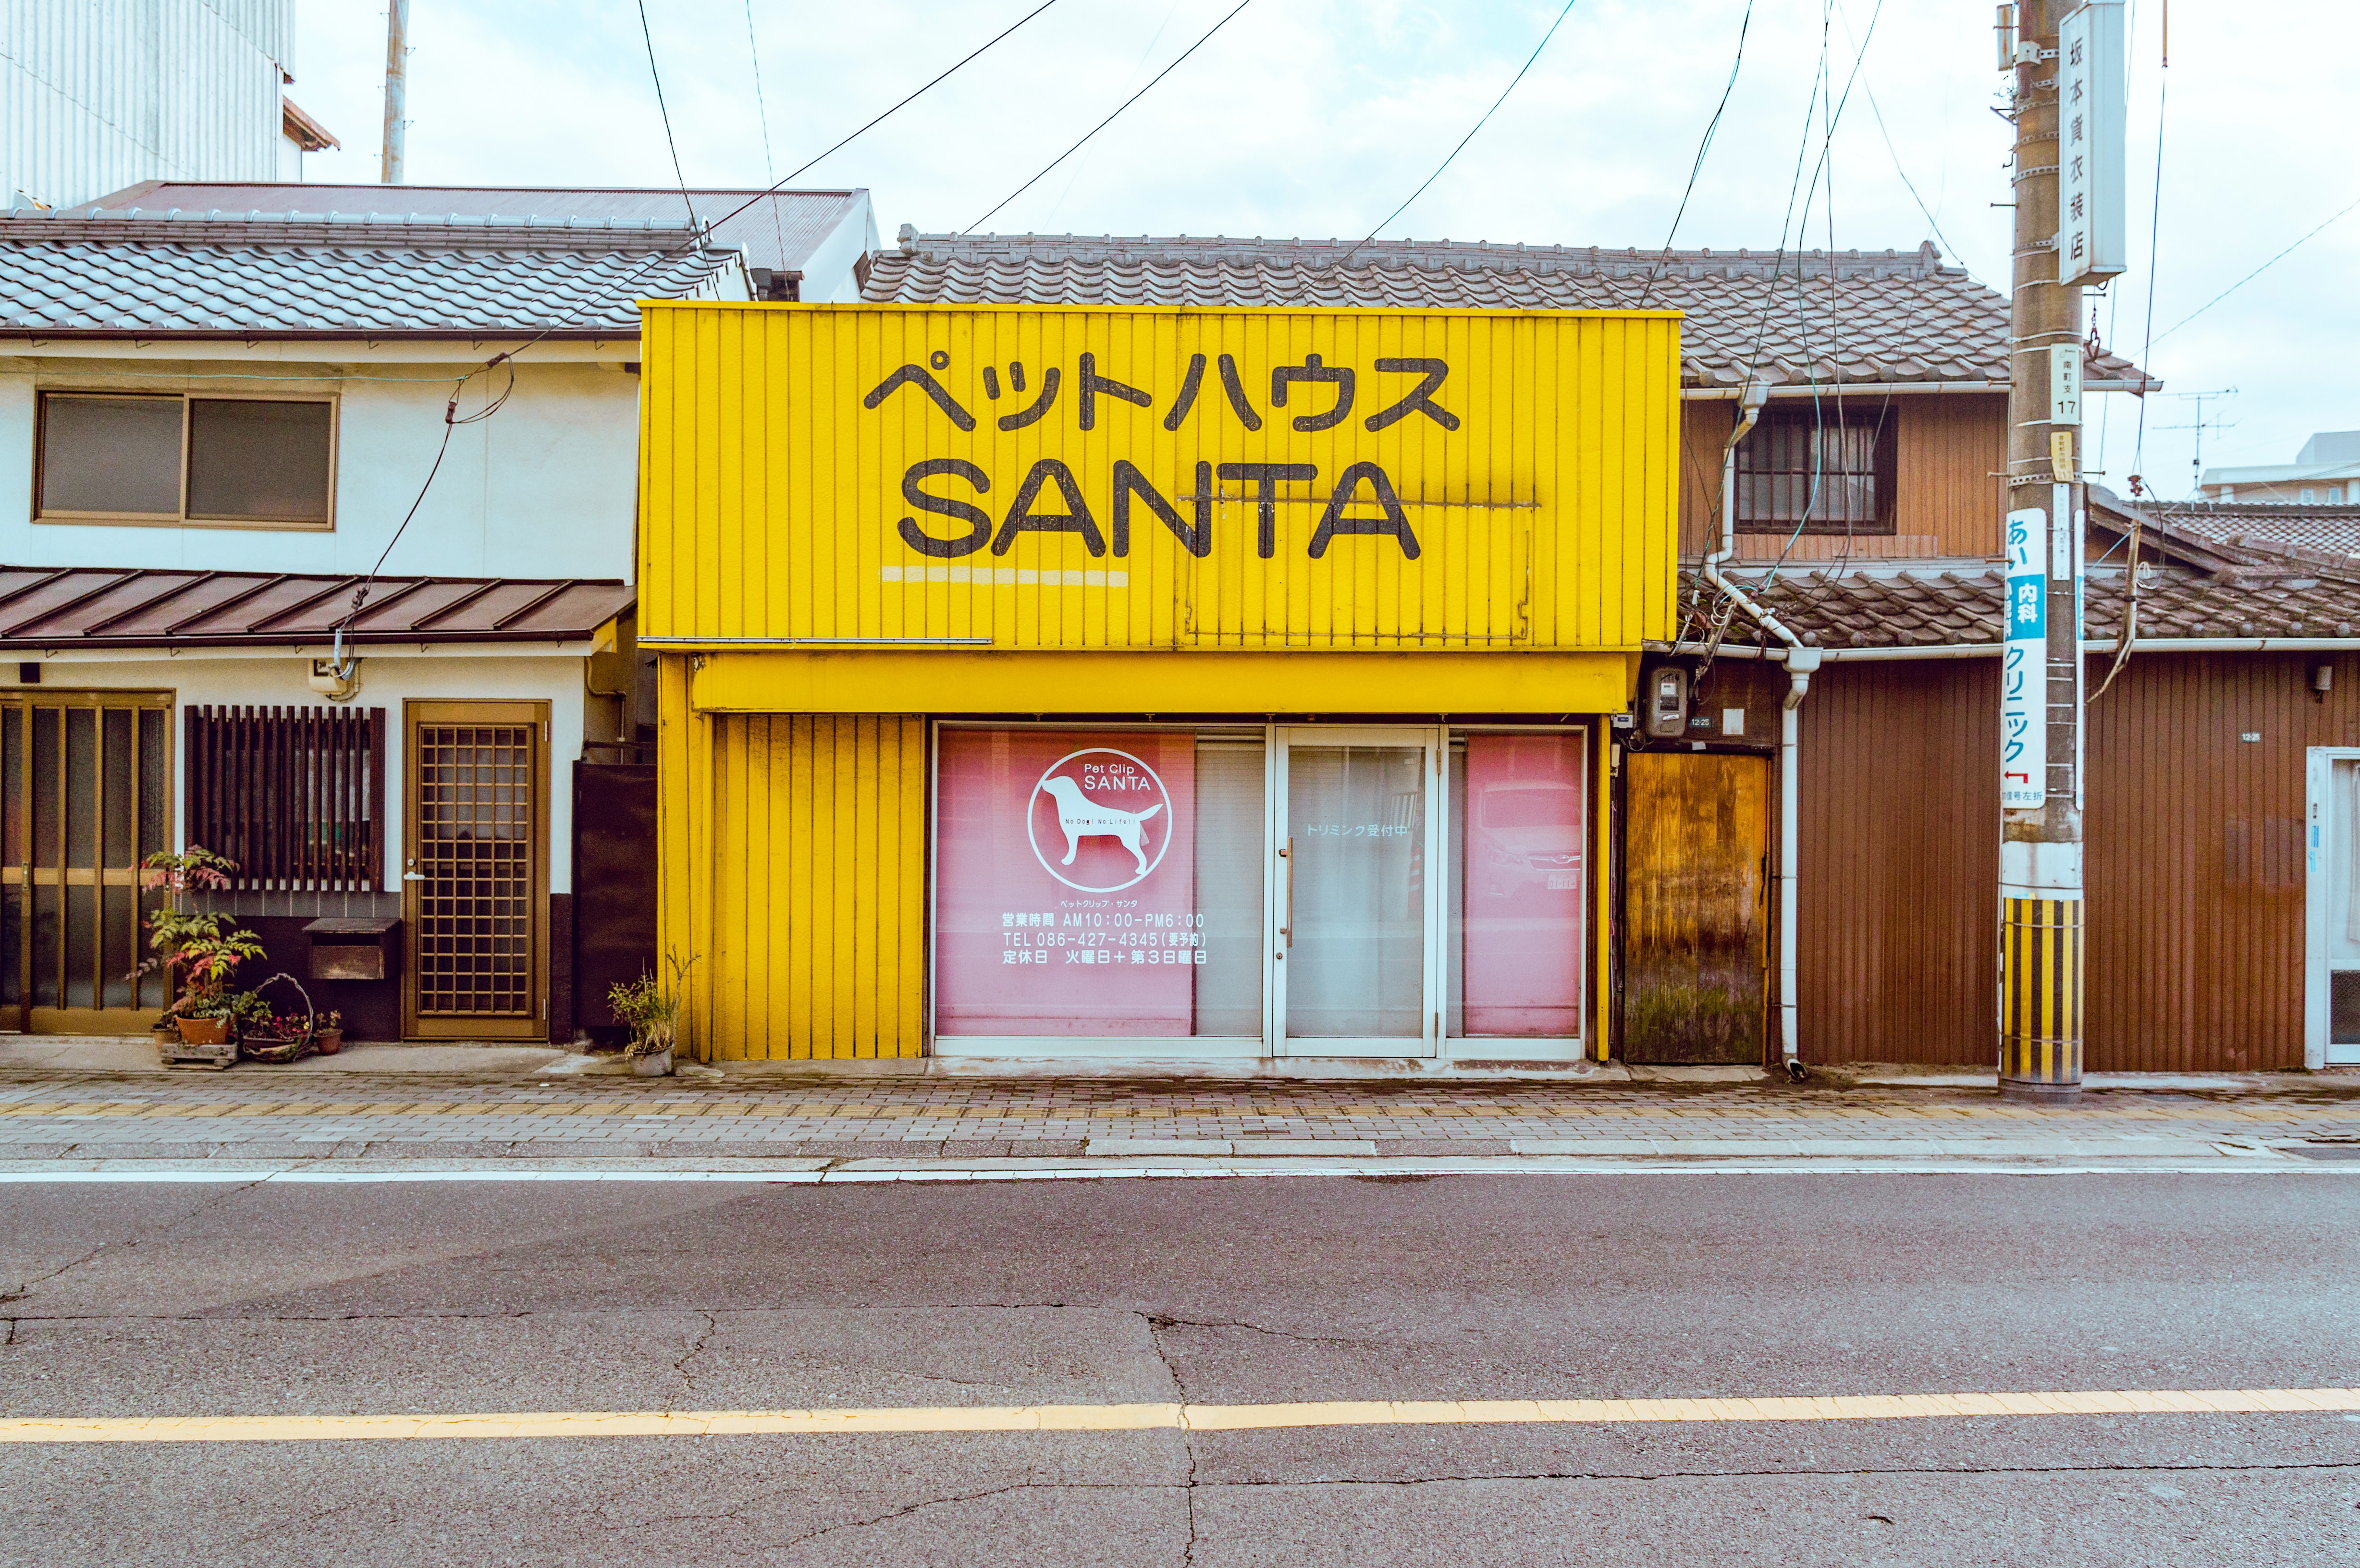 A small yellow store in a Japanese city